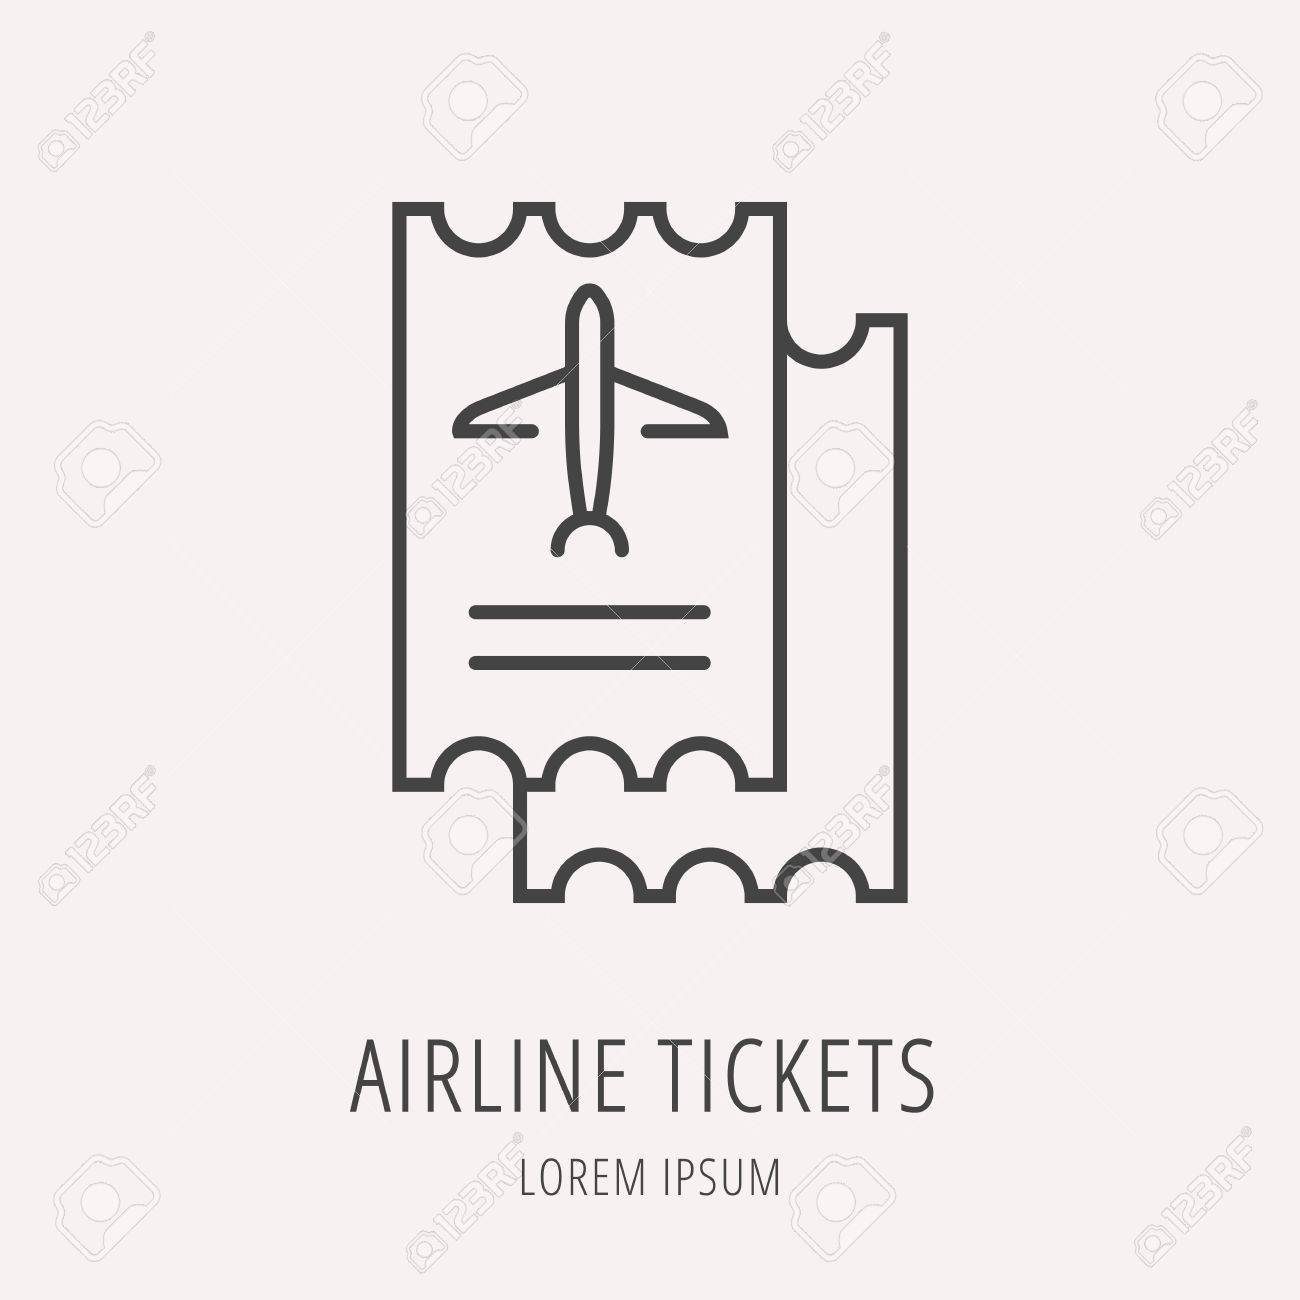 Logo Or Label Airline Tickets Line Style Logotype Easy To Use